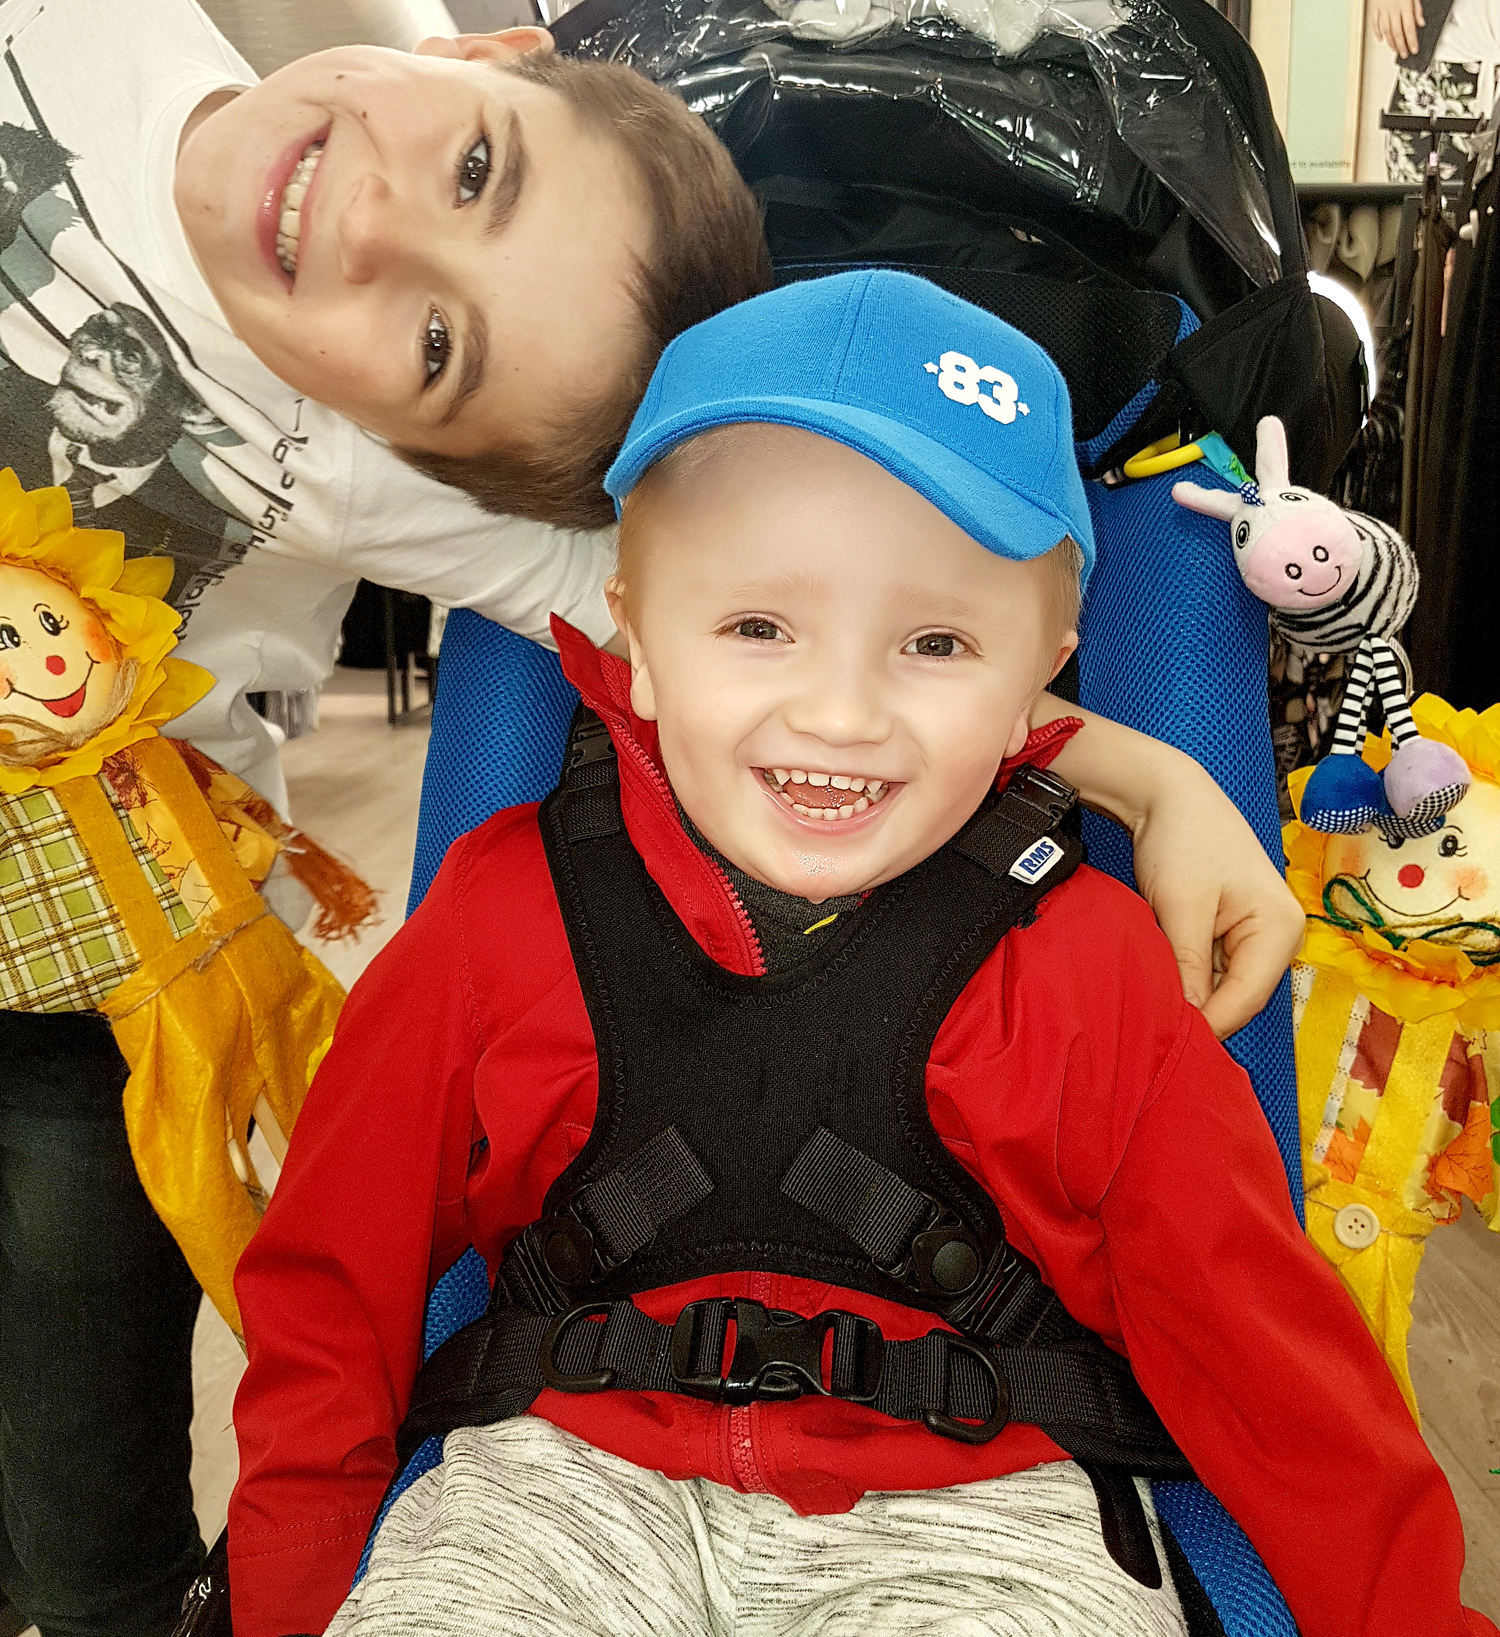 Aycliffe Family Bag Pack for Charity